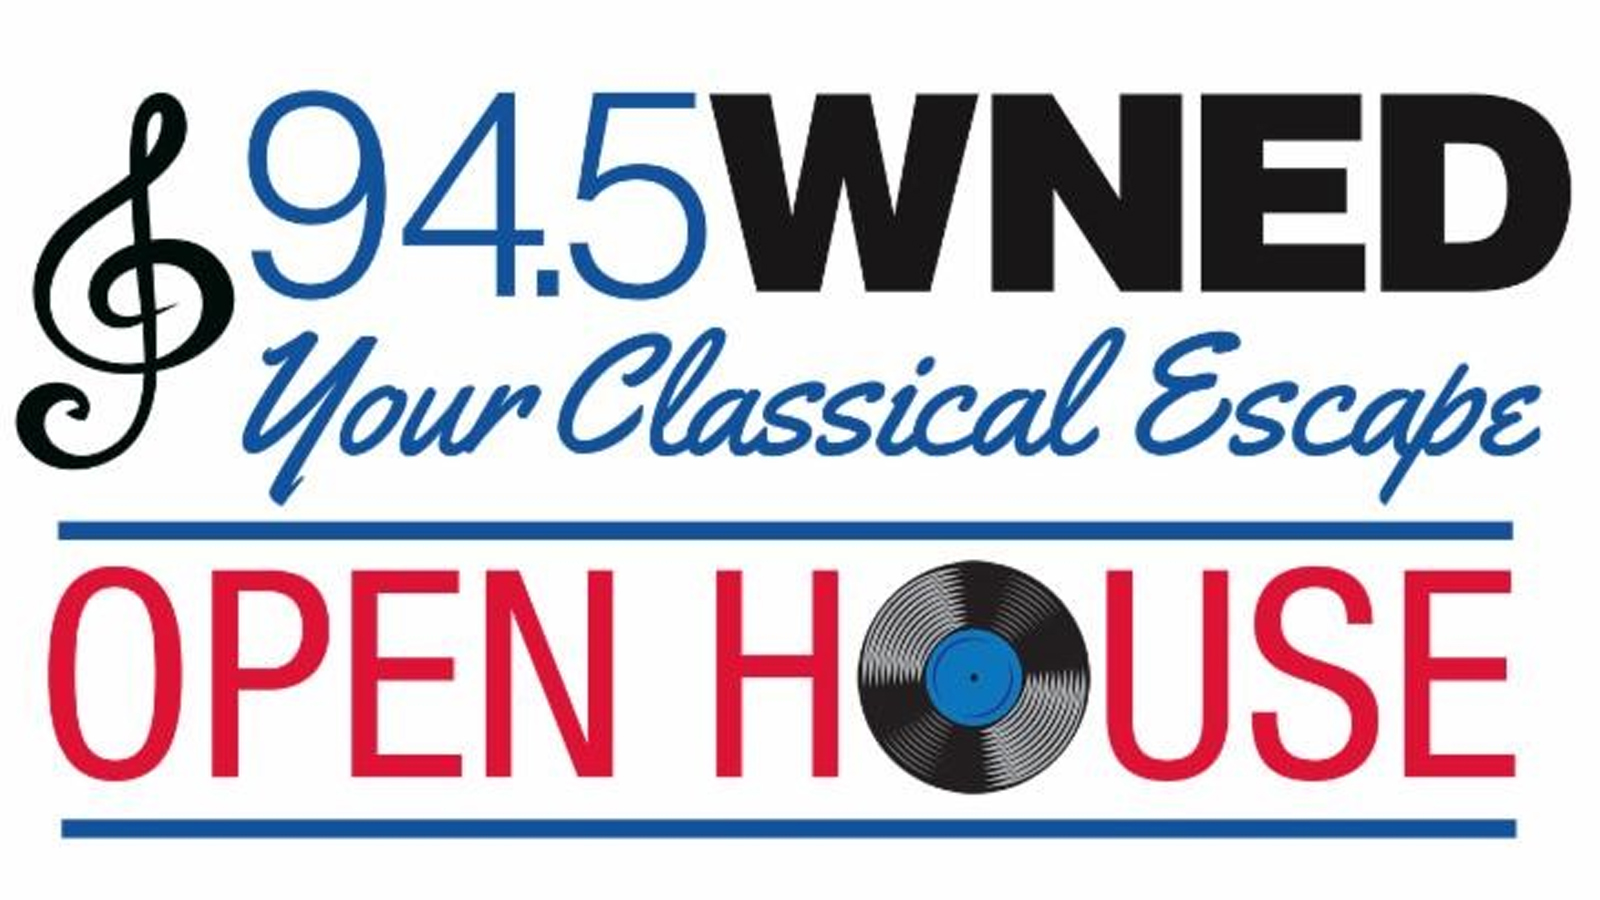 Classical WNED Open House